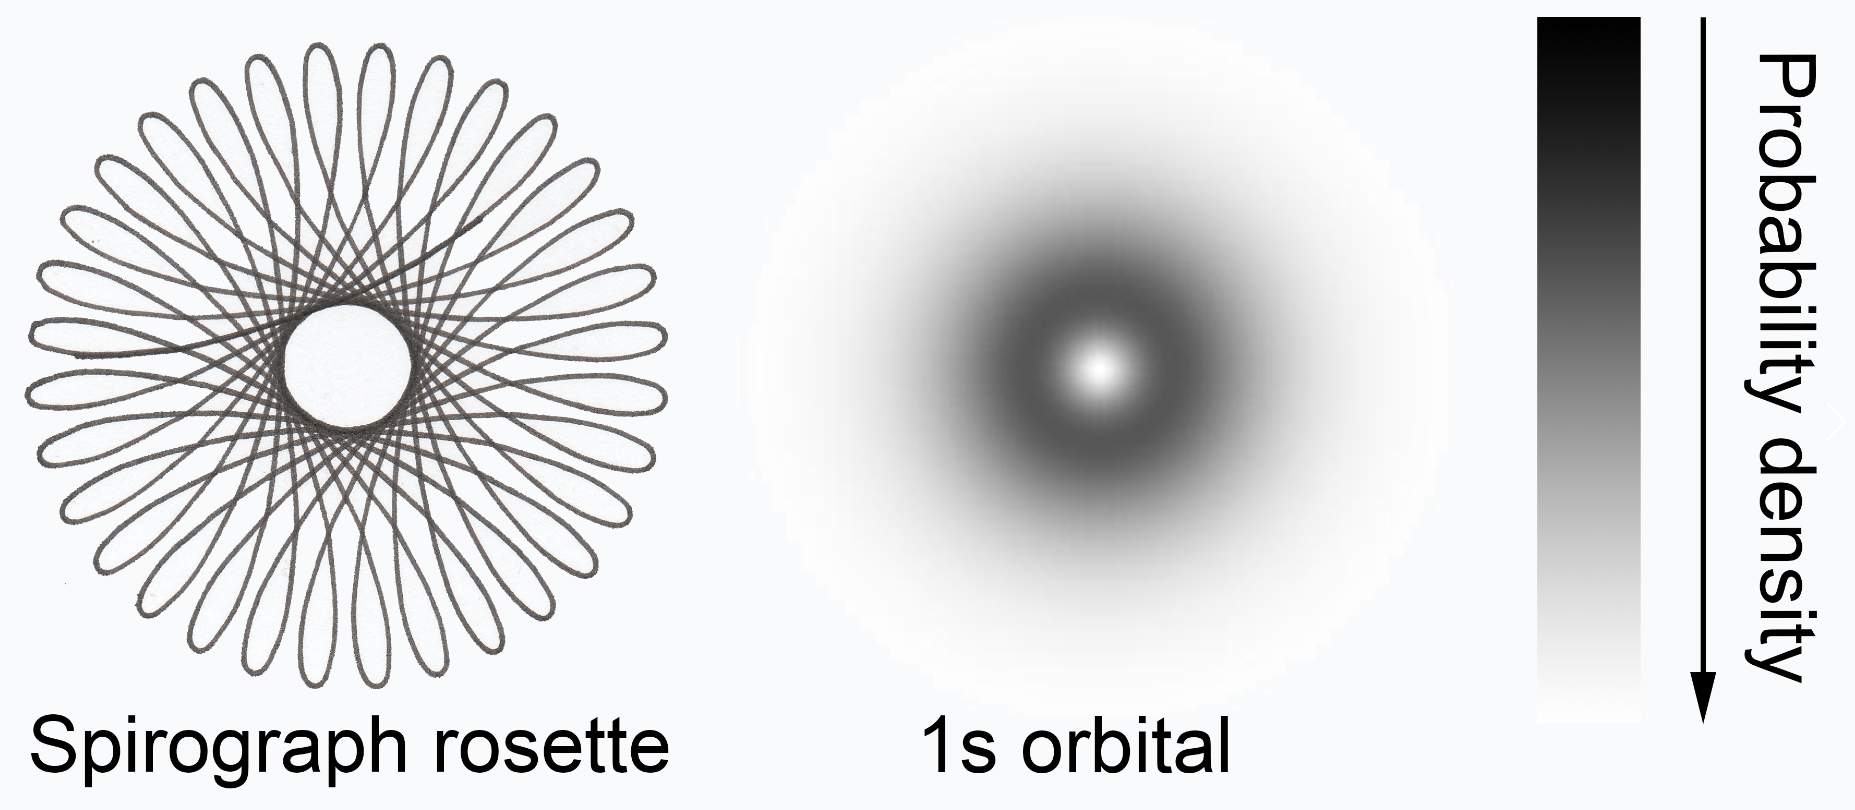 Introducing Electron Probability Density to High School Students Using a Spiral Drawing Toy